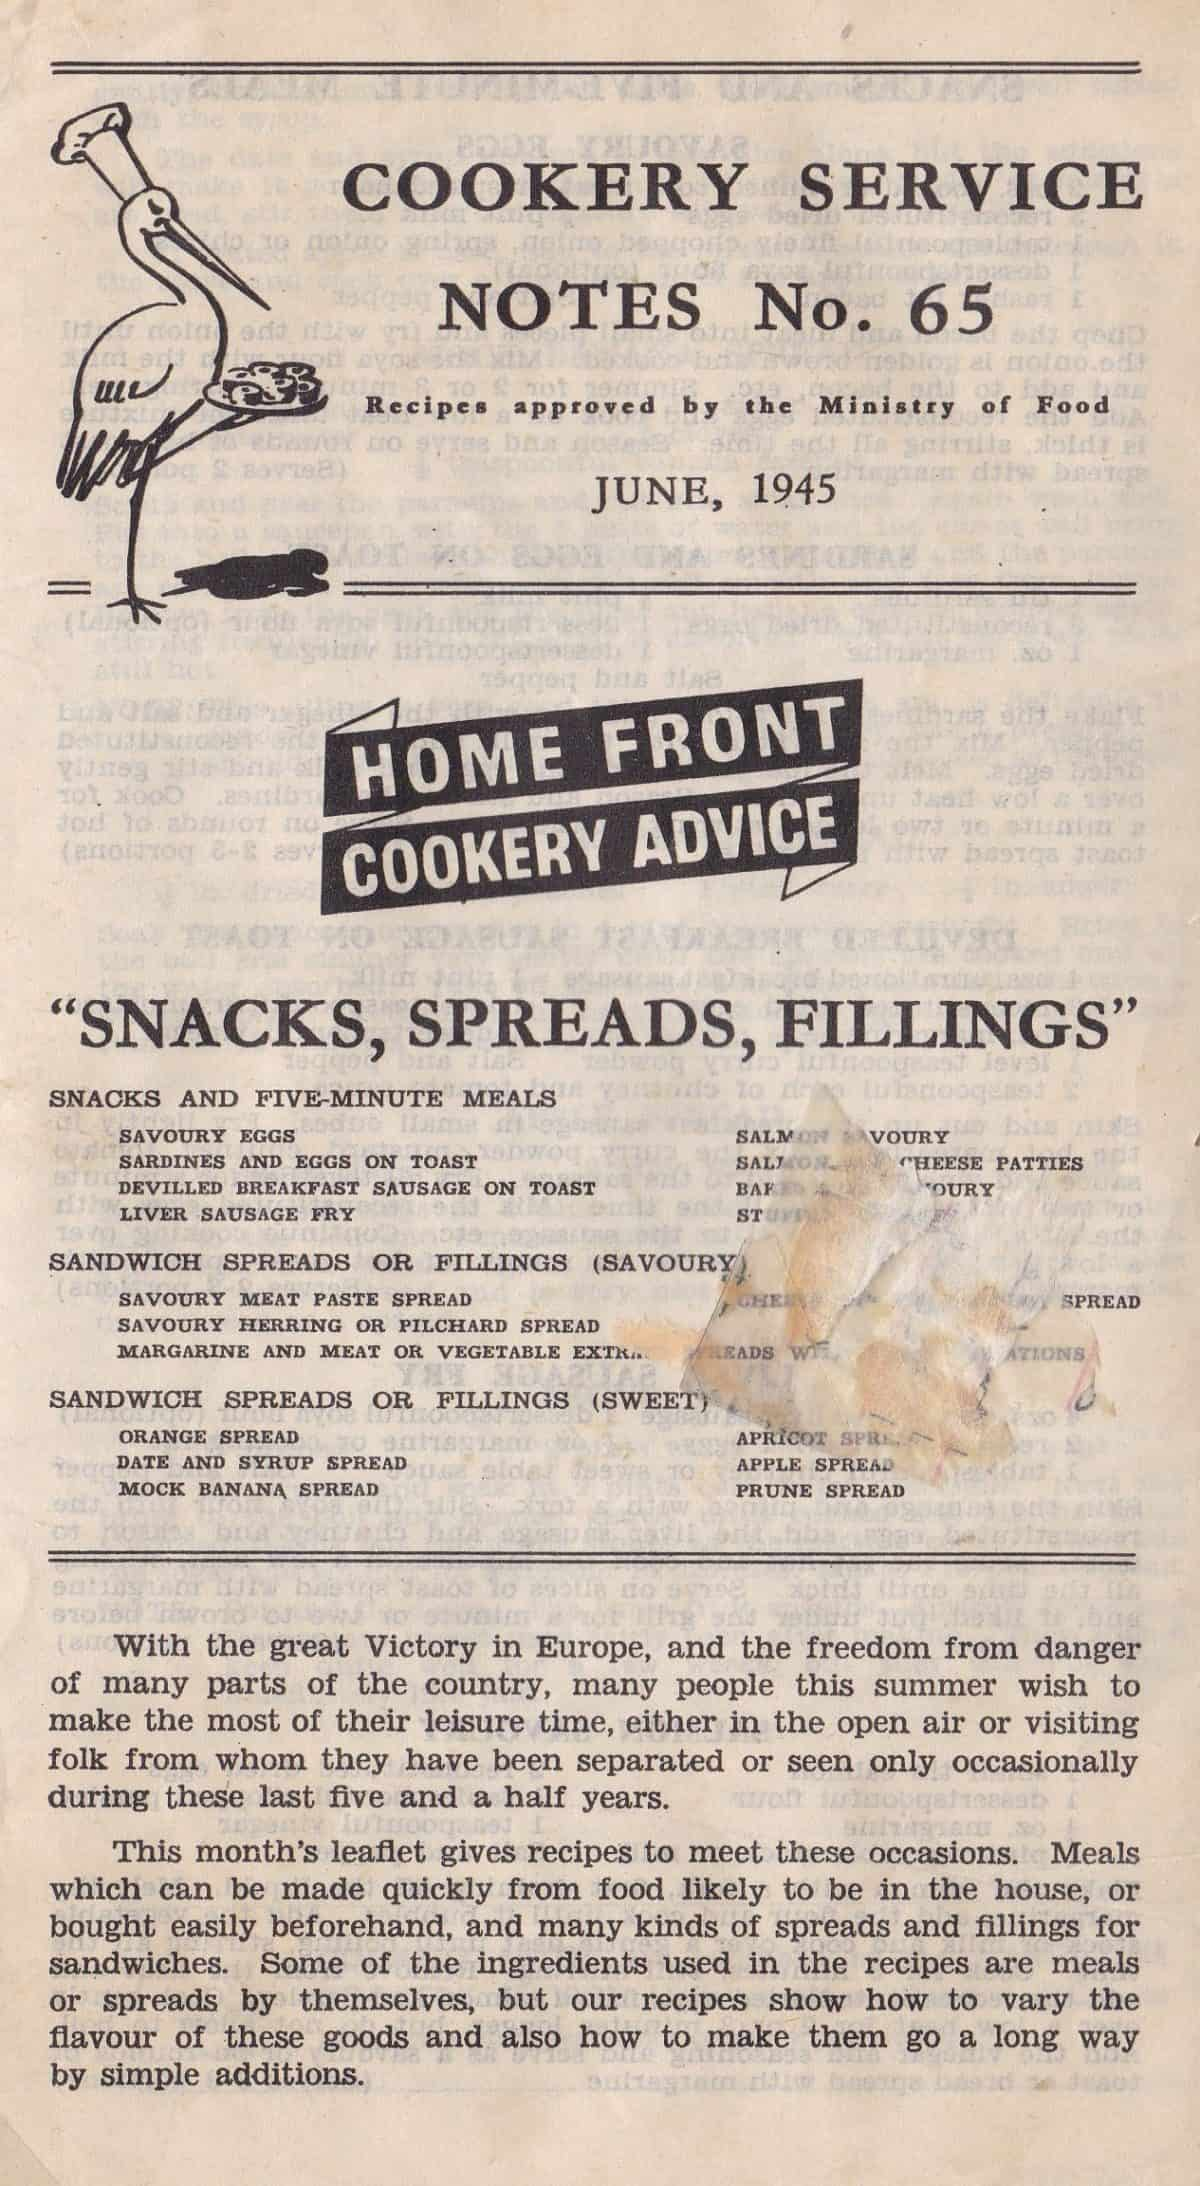 WW2 18 F5974.02 Cookery Service Notes No 65 (june 1945)